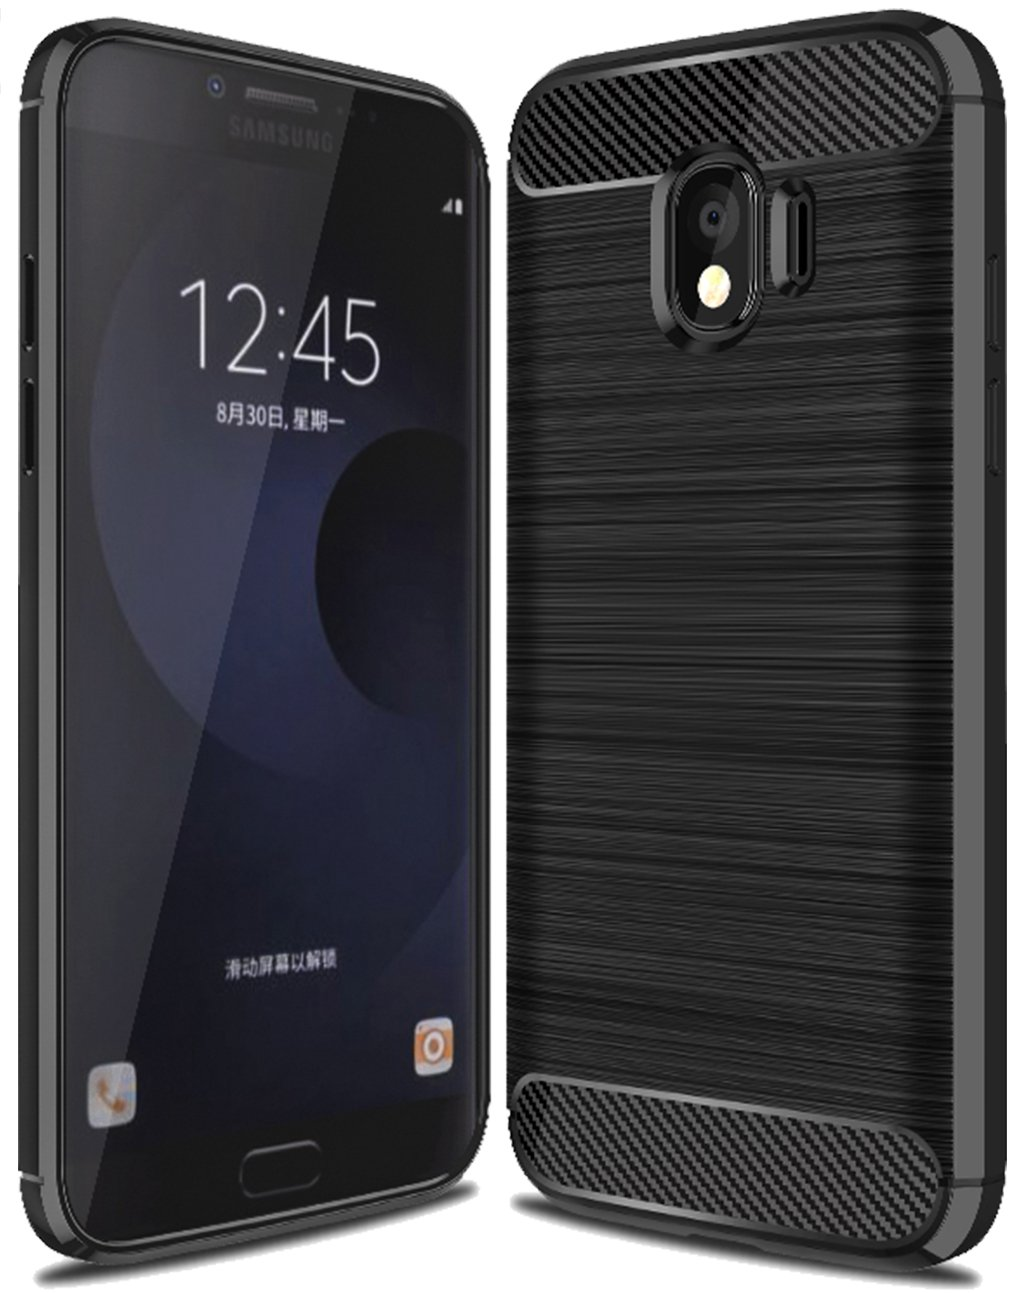 Galaxy J4 2018 Case, Sucnakp TPU Shock Absorption Technology Raised Bezels Protective Case Cover for Samsung Galaxy J4 2018 smartphone (Black)